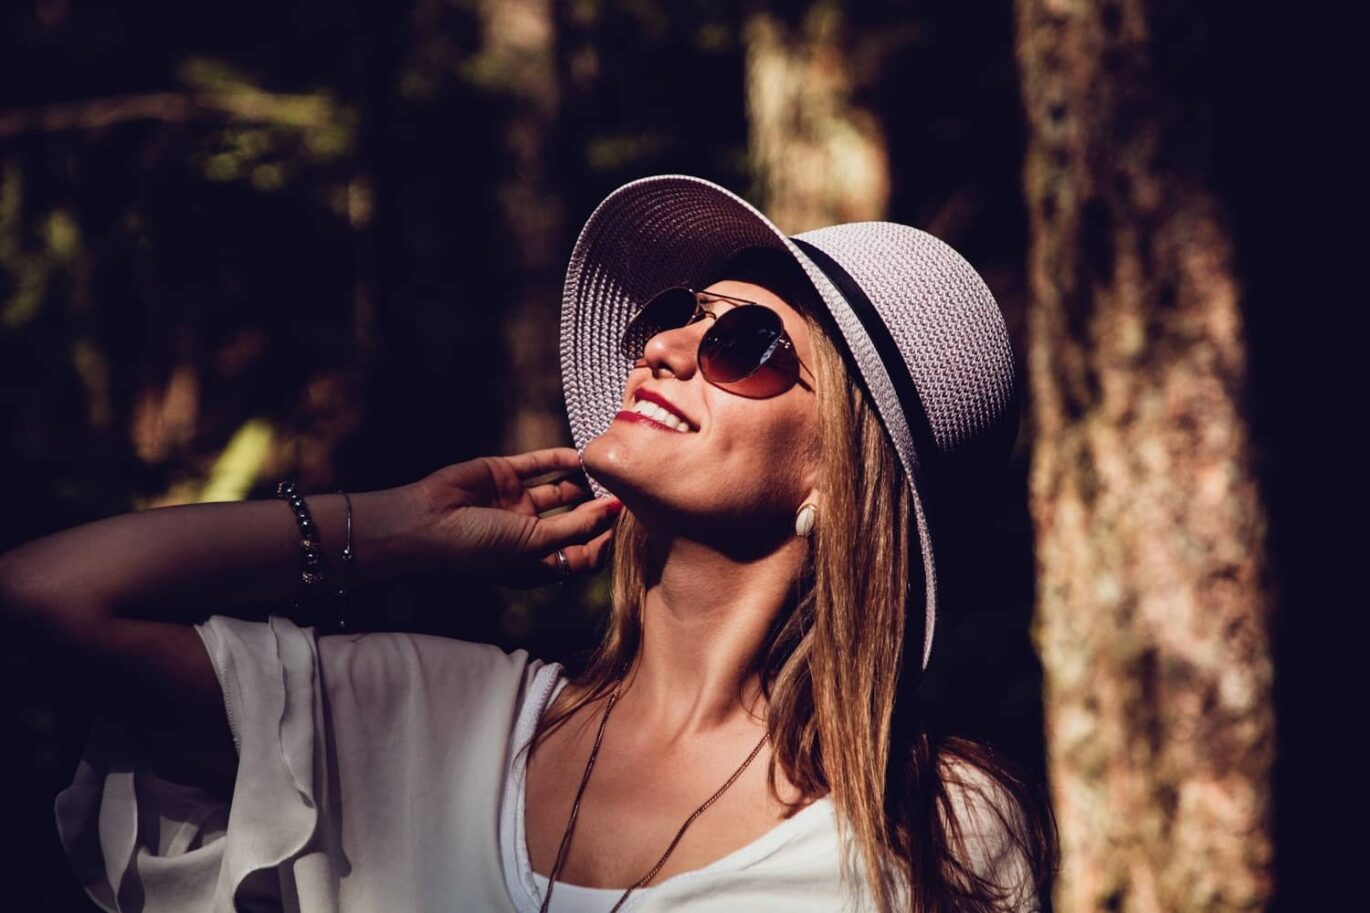 A confident woman wearing sunglasses looking at the sky